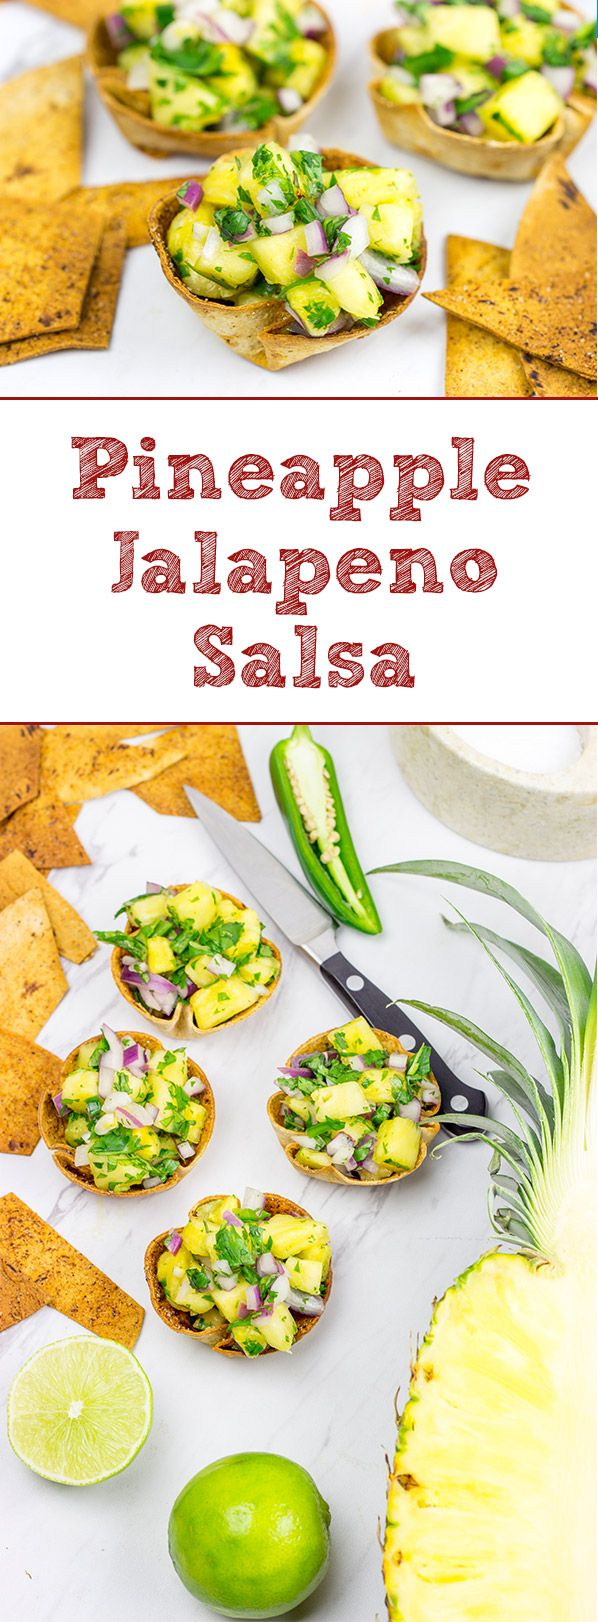 Mix up summer salsa season with this Pineapple Jalapeno Salsa!